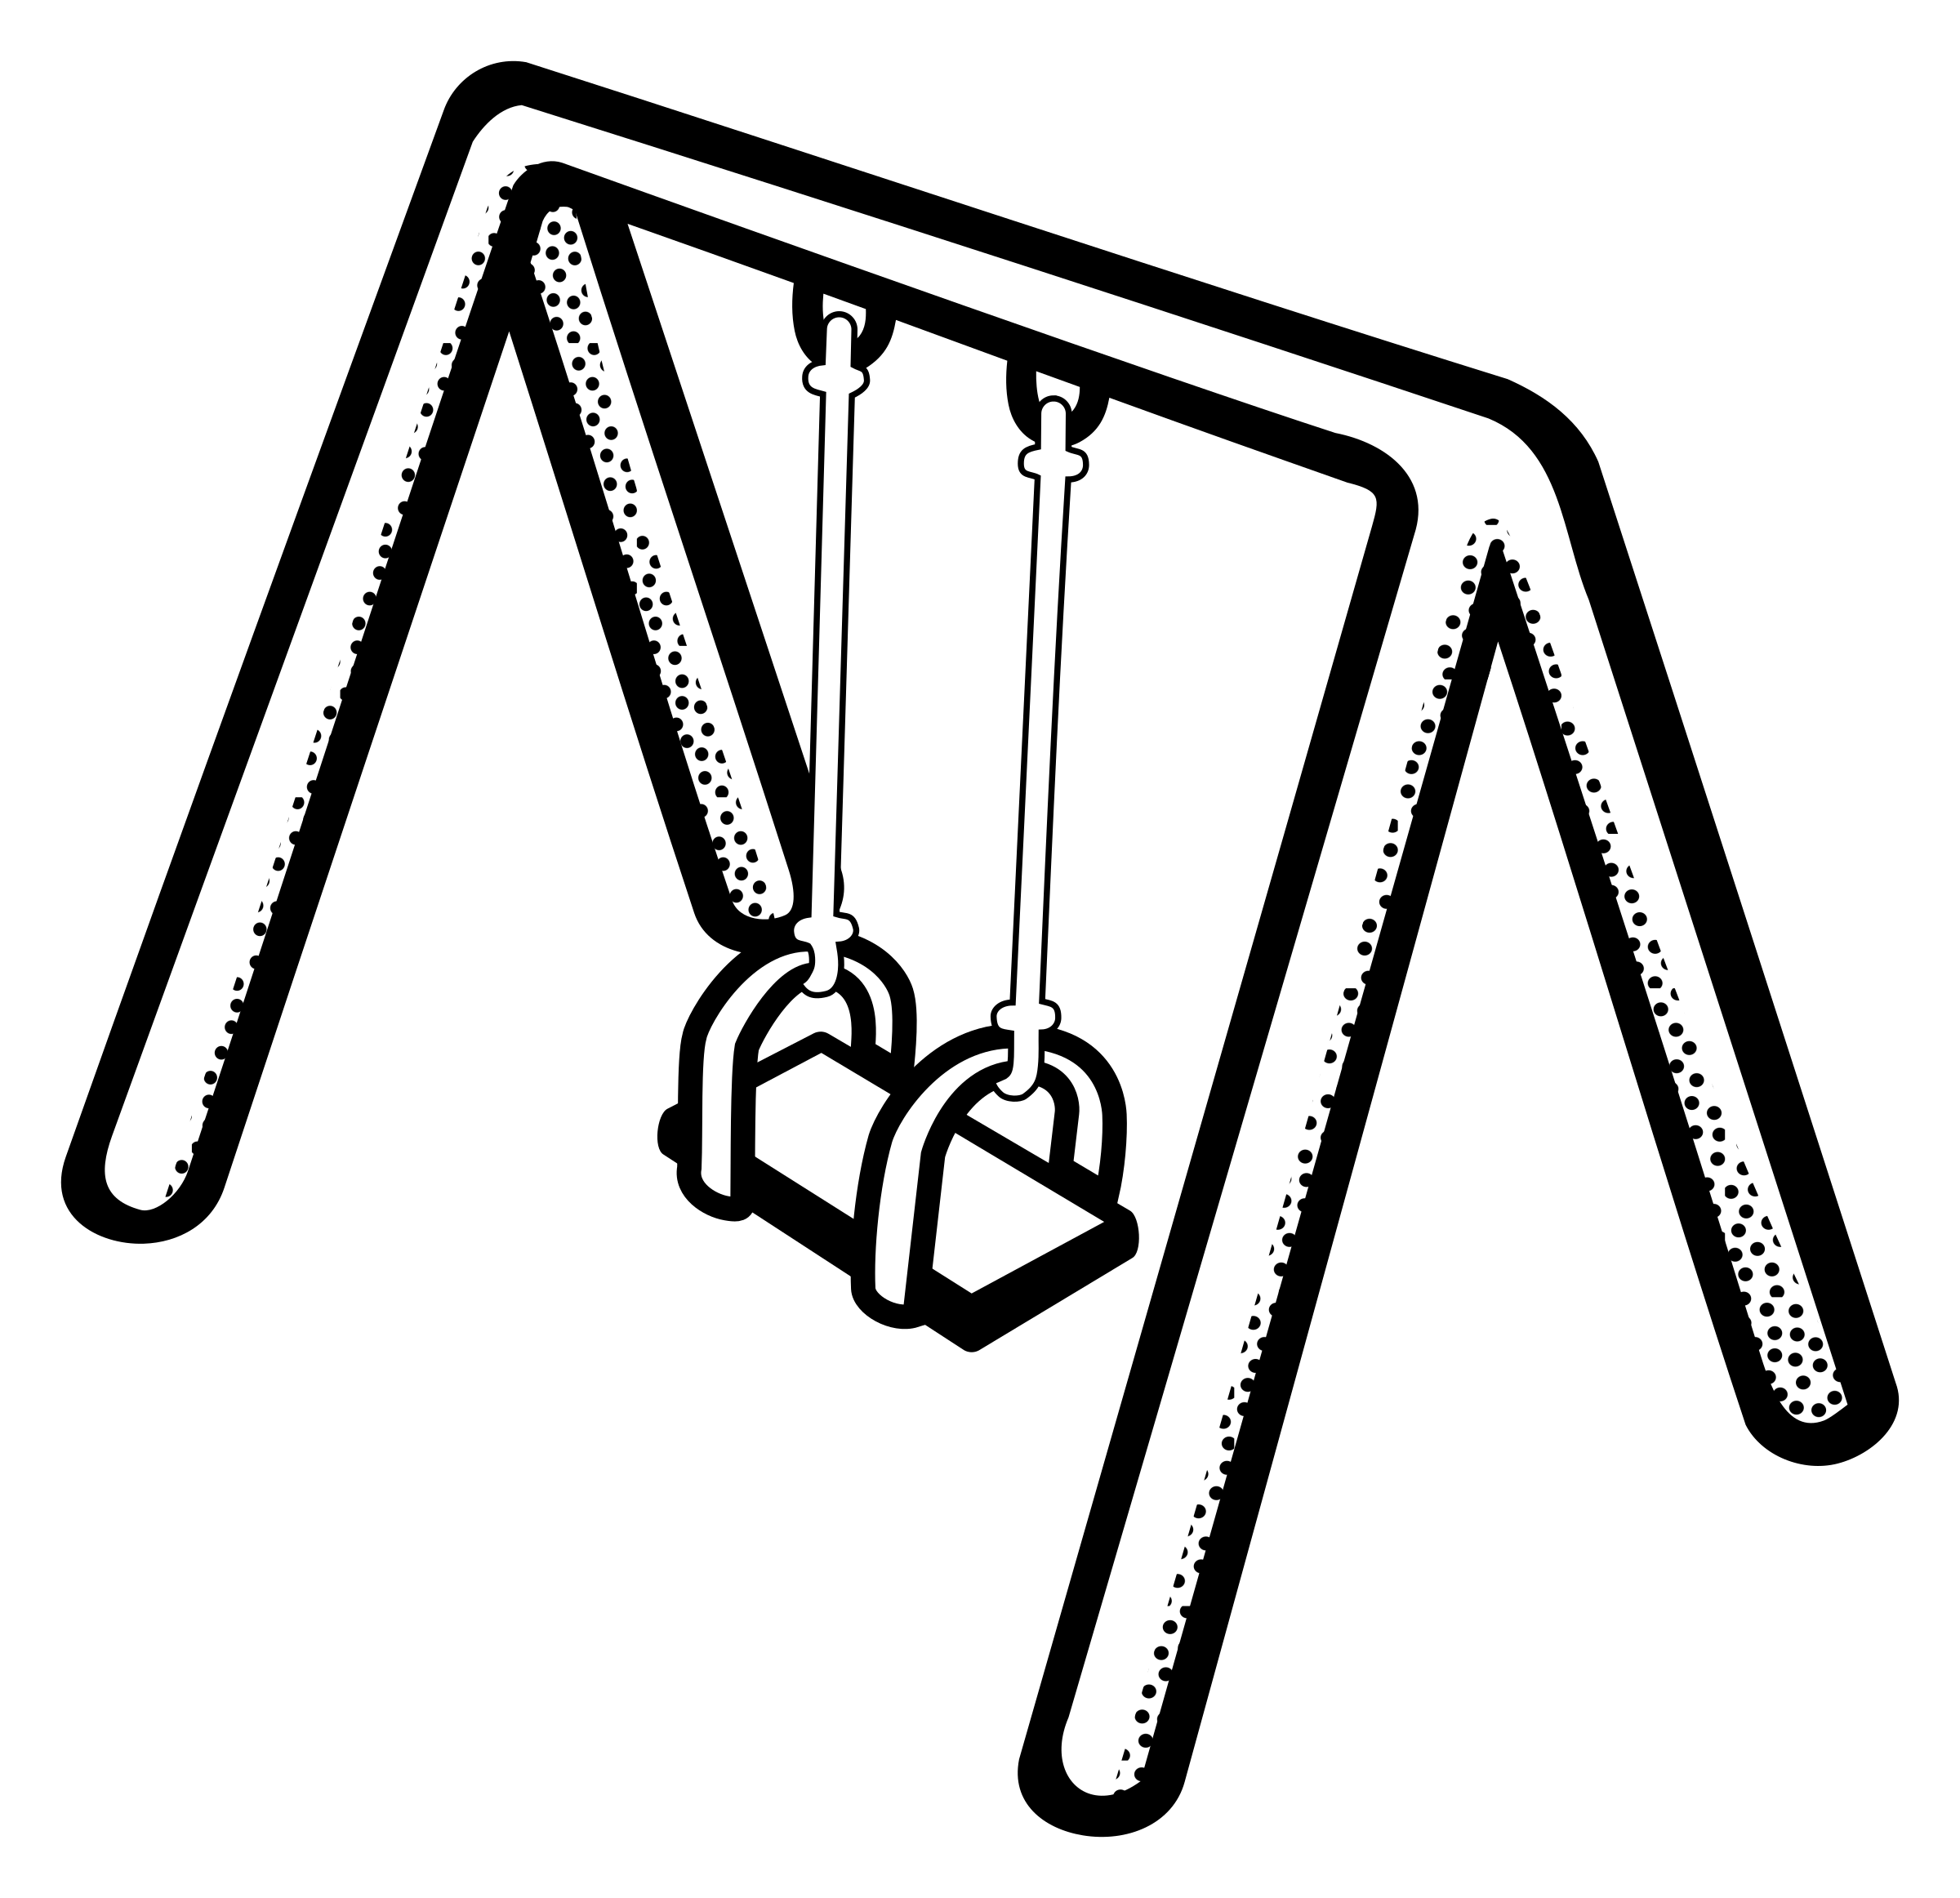 Swing clipart black and white 2 » Clipart Station.